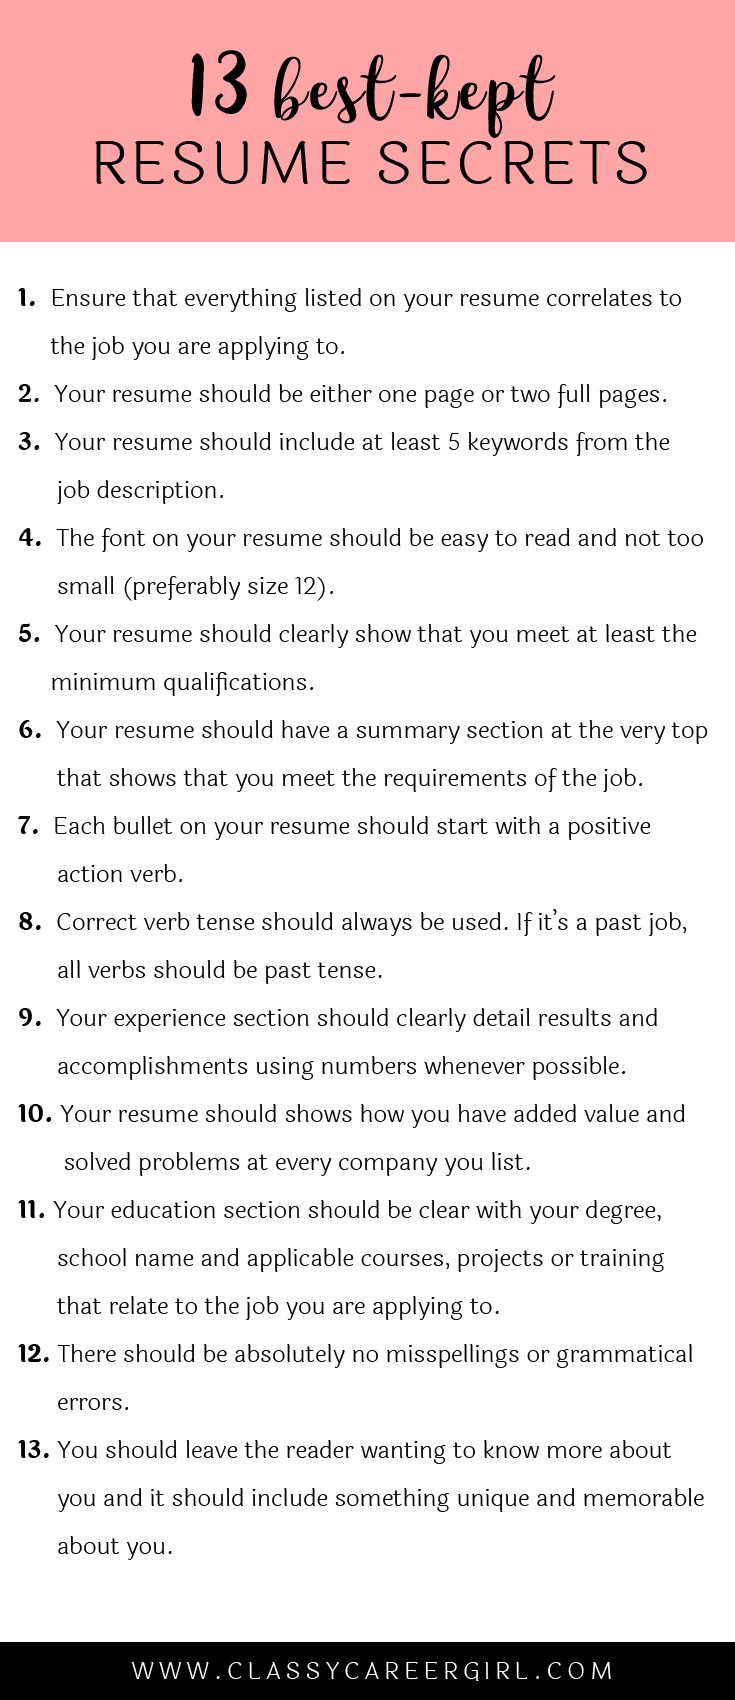 Opposenewapstandardsus  Seductive  Ideas About Resume On Pinterest  Cv Format Resume  With Fascinating Some Hiring Managers Will Toss Your Resume Out If You Dont Know These  With Amazing Resume Recruiter Also Office Manager Resume Samples In Addition Resume With Photo Template And Mft Intern Resume As Well As Sample Resume Profile Statements Additionally Cover Letter Examples For Job Resume From Pinterestcom With Opposenewapstandardsus  Fascinating  Ideas About Resume On Pinterest  Cv Format Resume  With Amazing Some Hiring Managers Will Toss Your Resume Out If You Dont Know These  And Seductive Resume Recruiter Also Office Manager Resume Samples In Addition Resume With Photo Template From Pinterestcom